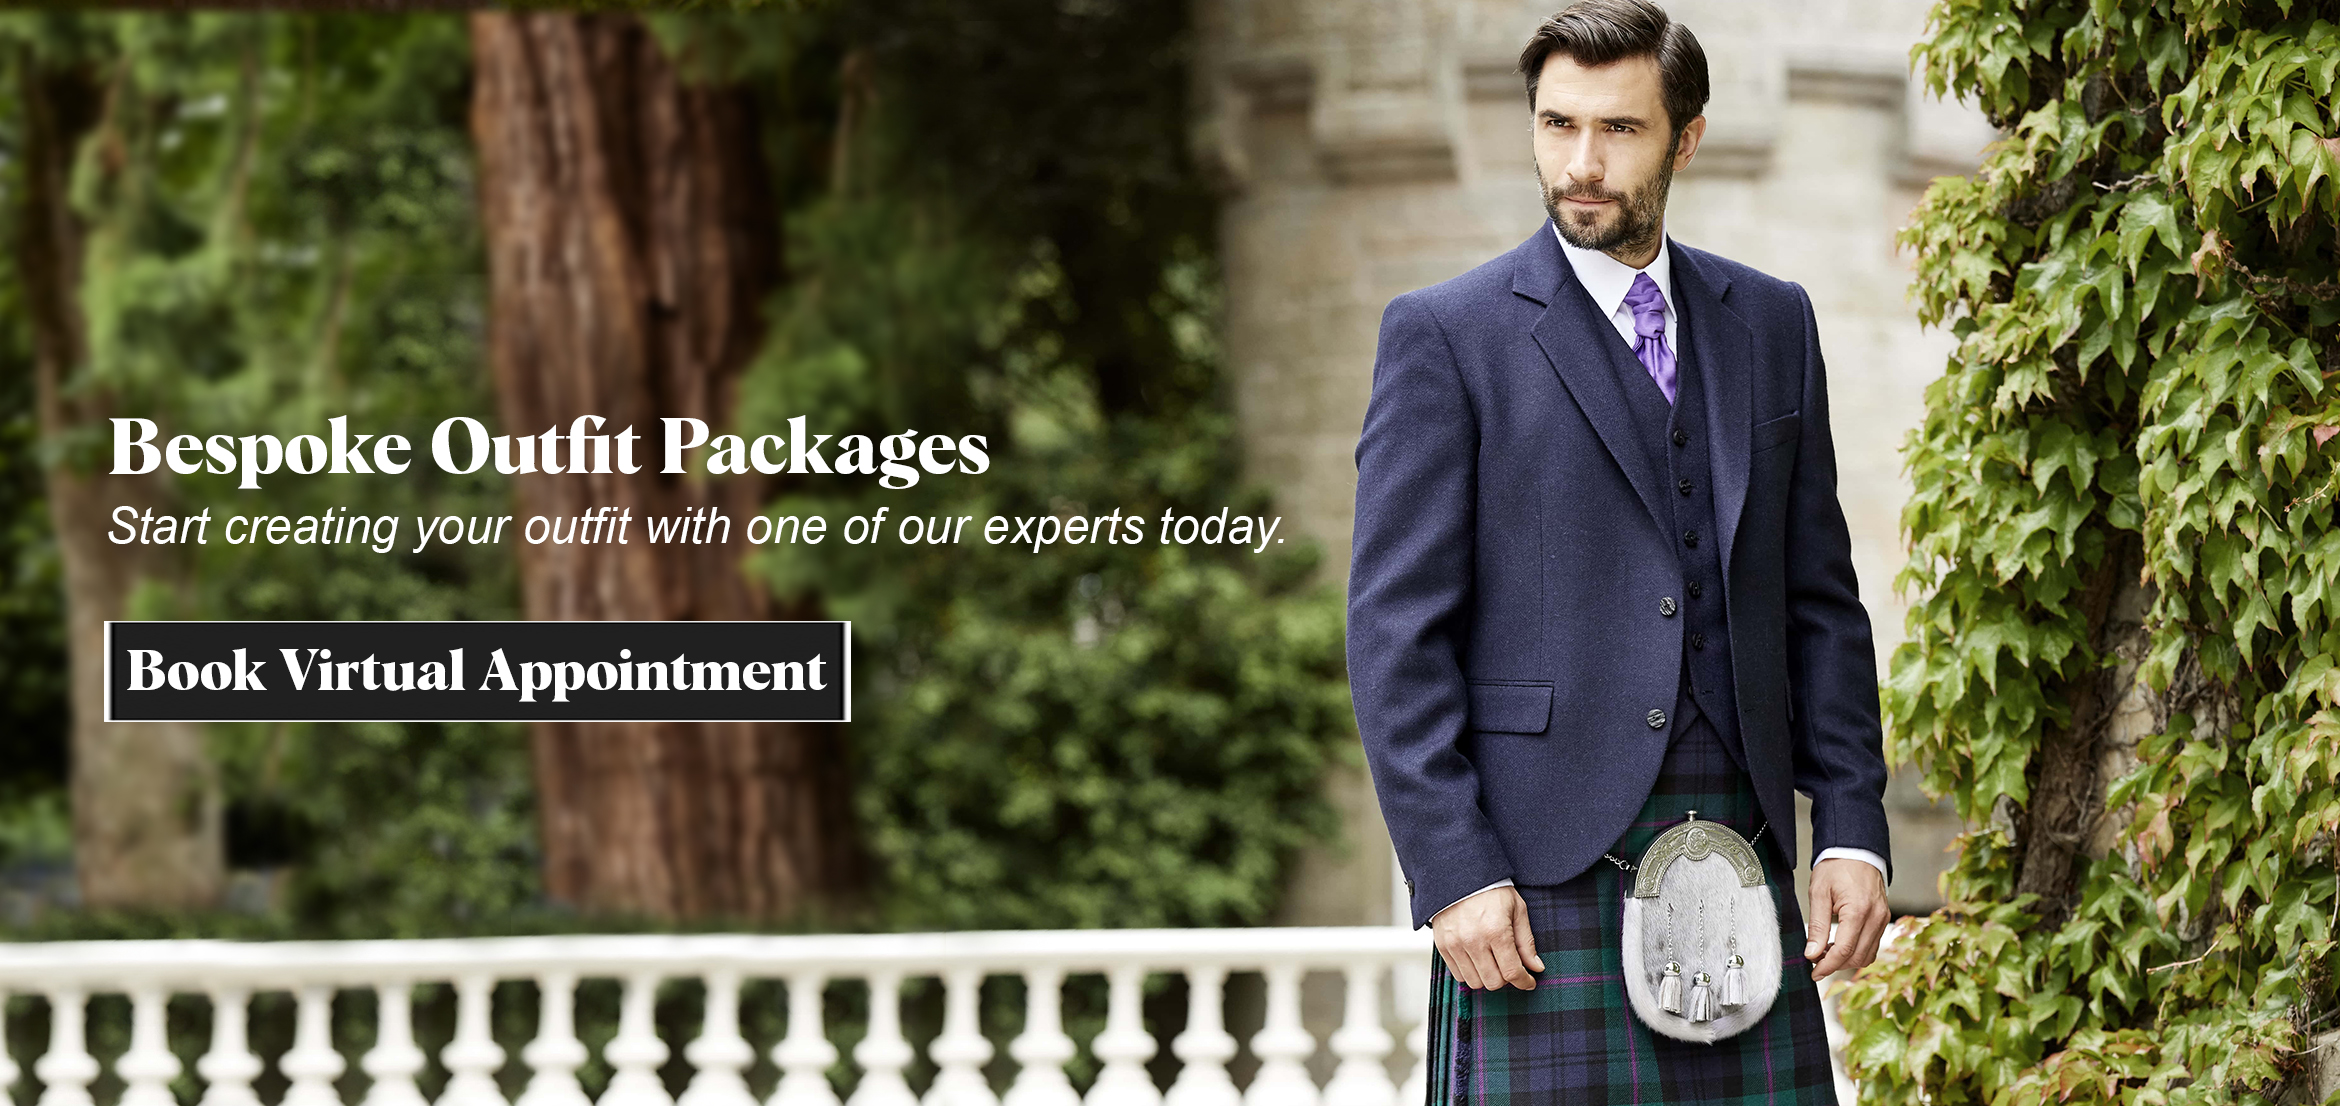 Bespoke Outfit Packages